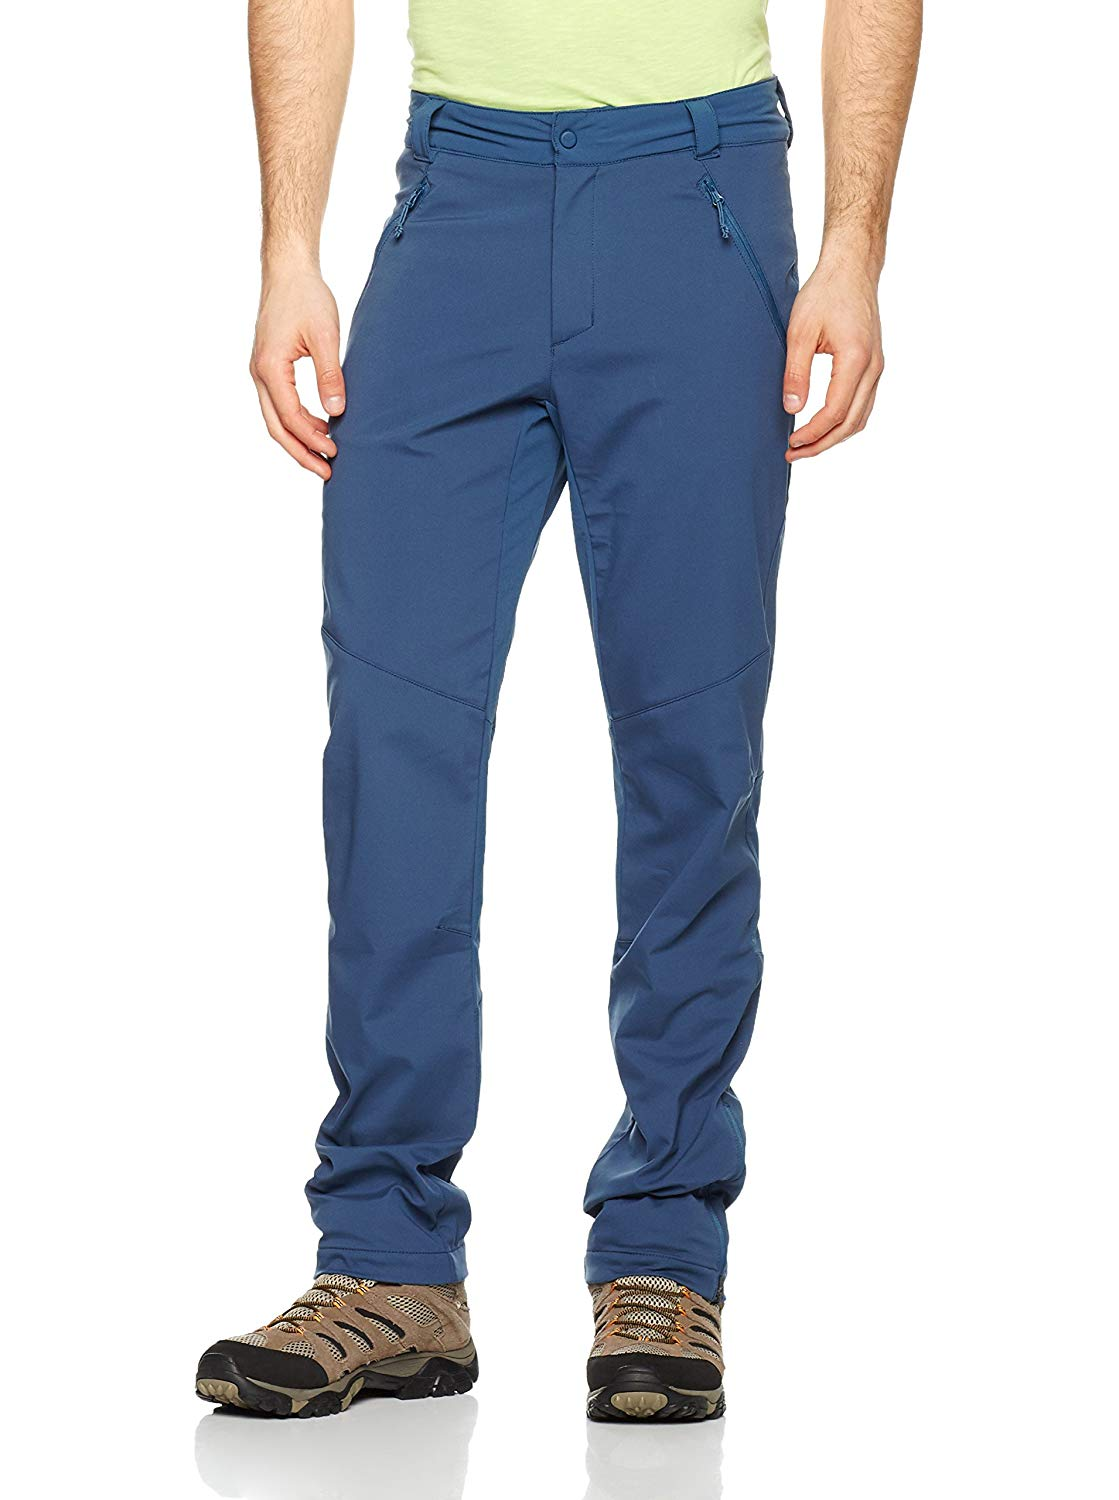 Salewa Puez (Merrick) SW Pant Fb. dark-denim 54